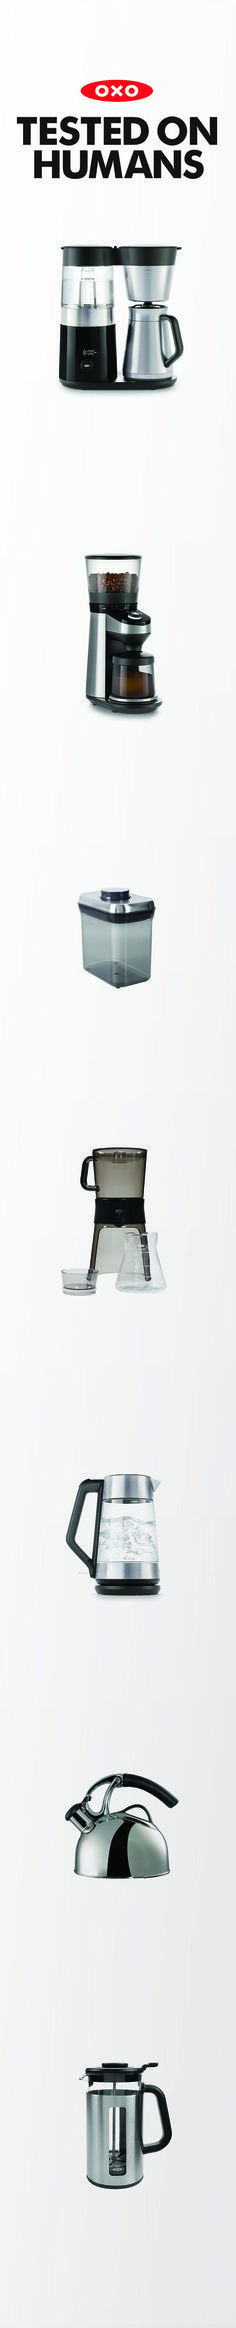 9-Cup Coffee Maker. Burr Grinder. Coffee POP Container. Cold Brew Coffee Maker. Electric Kettle. Uplift Tea Kettle. French Press.